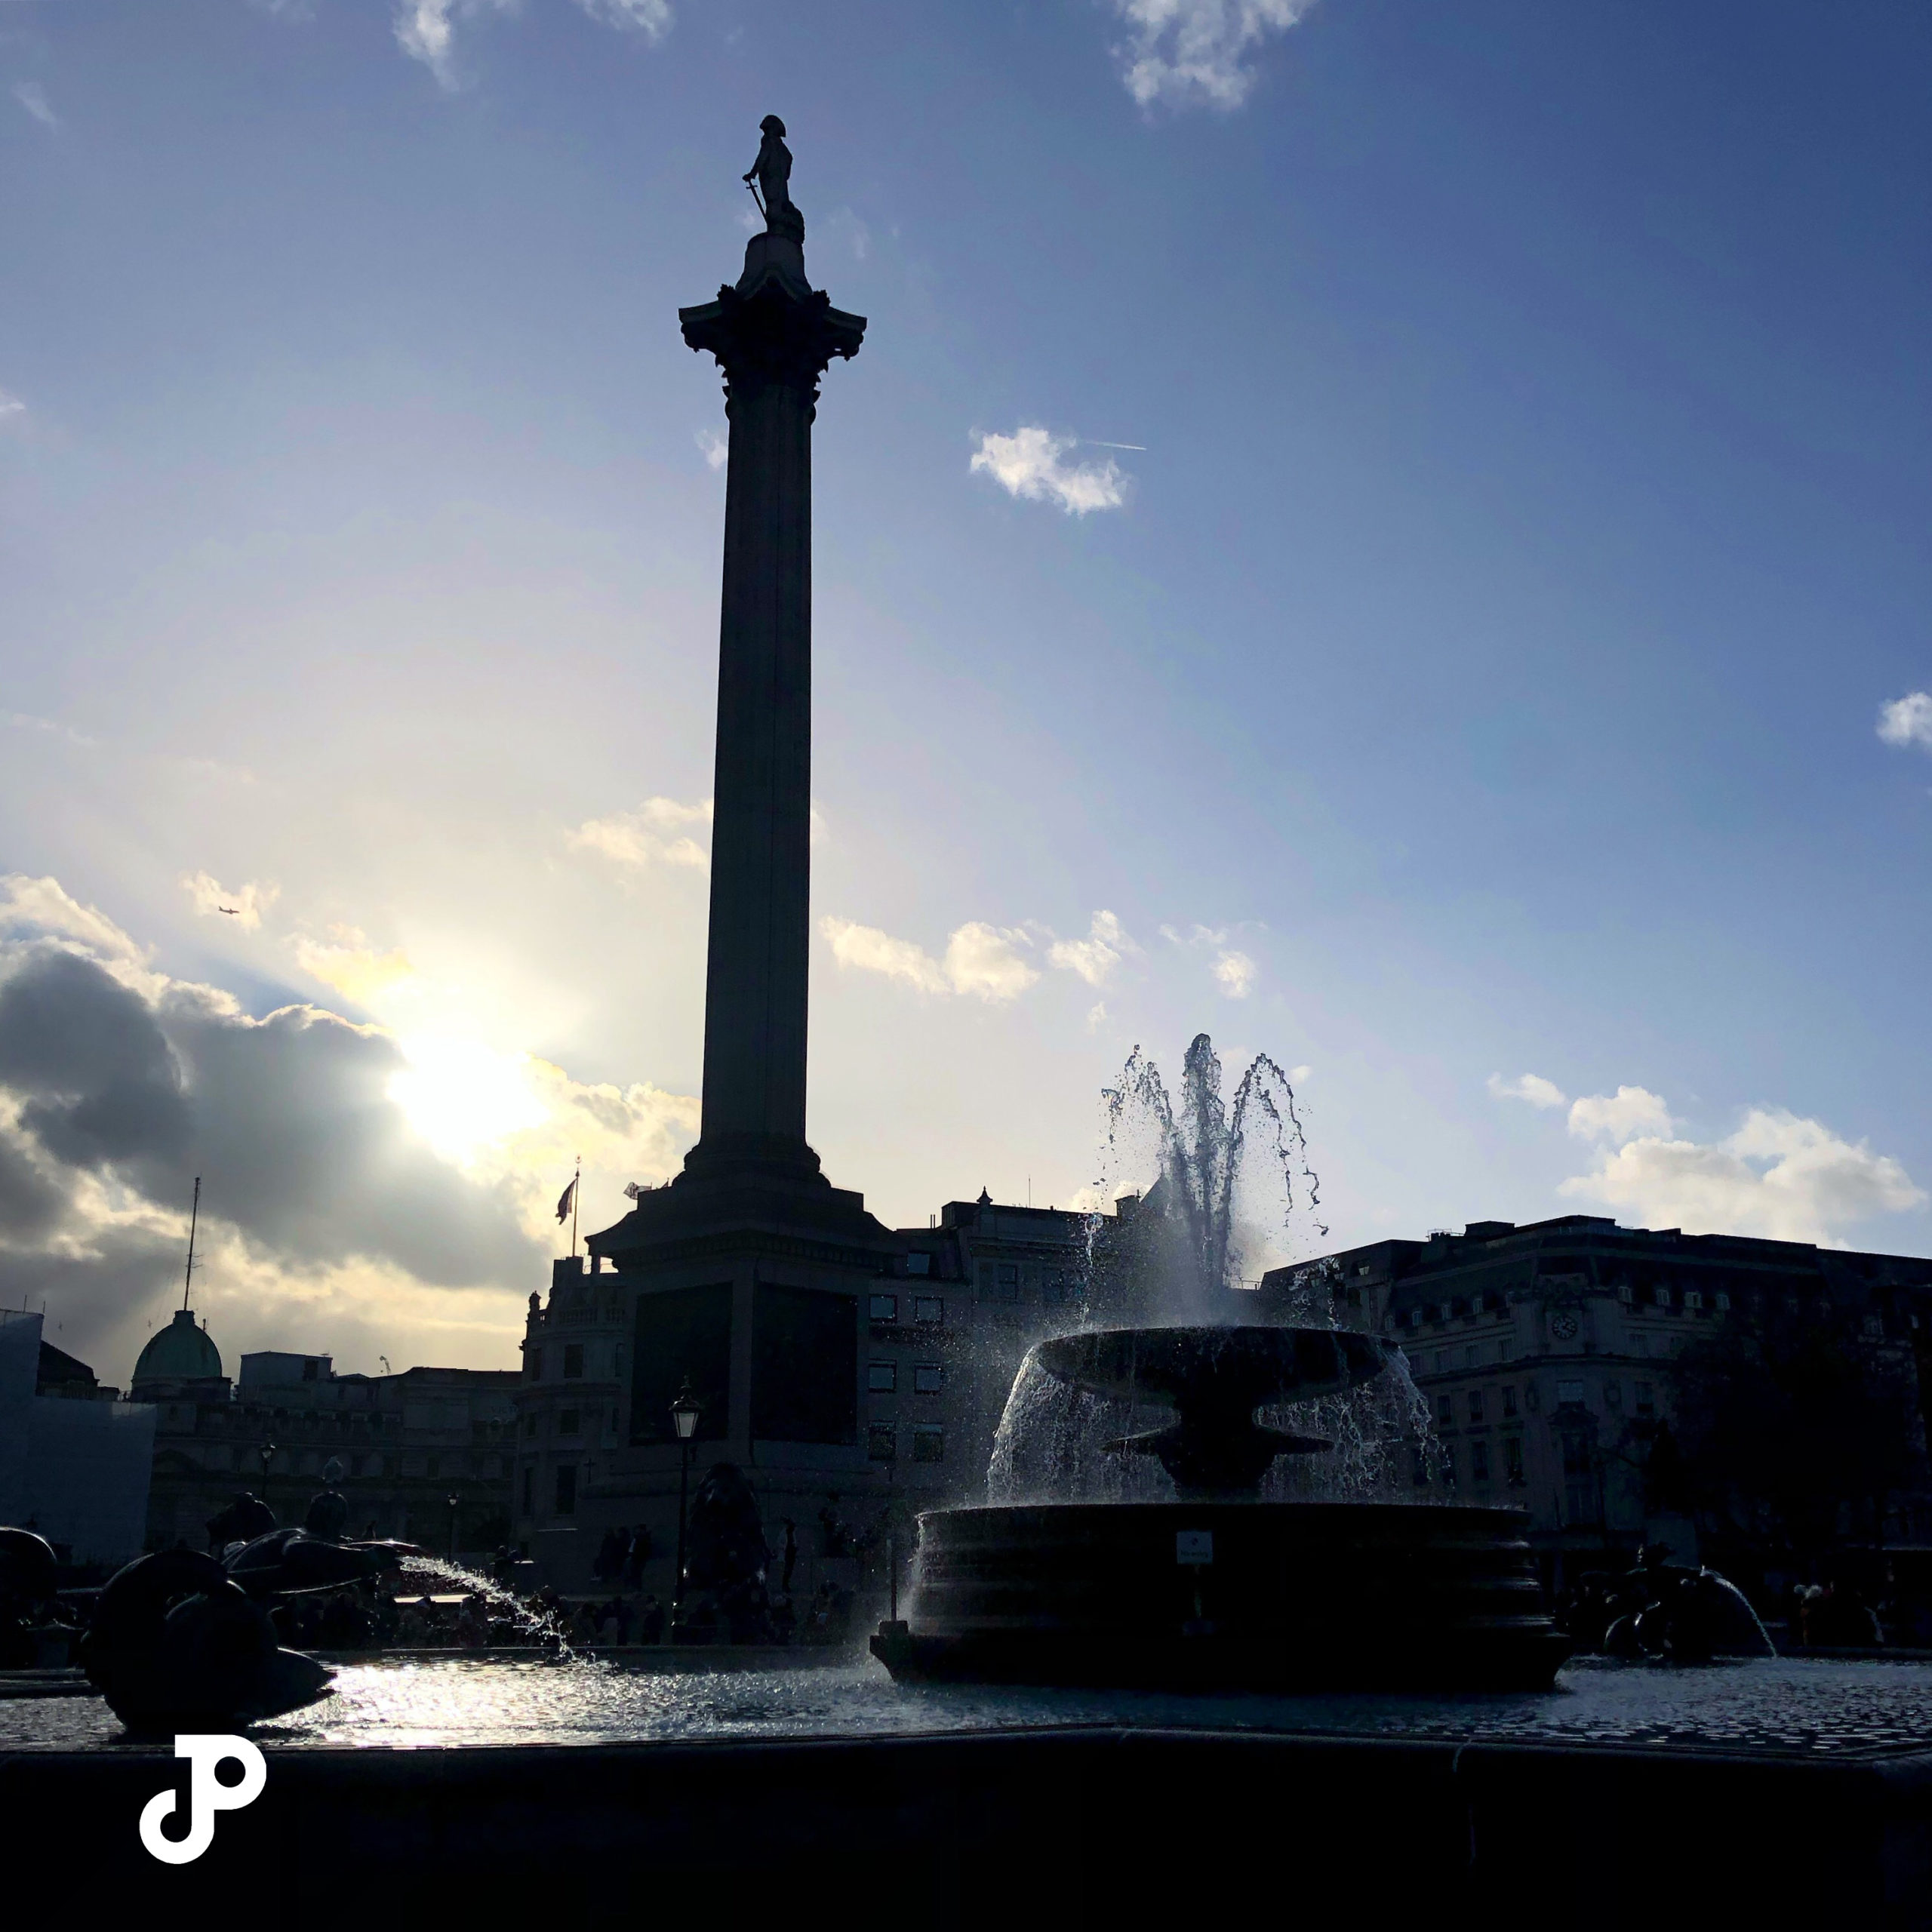 a shadowed view of Nelson's Column in Trafalgar Square, London